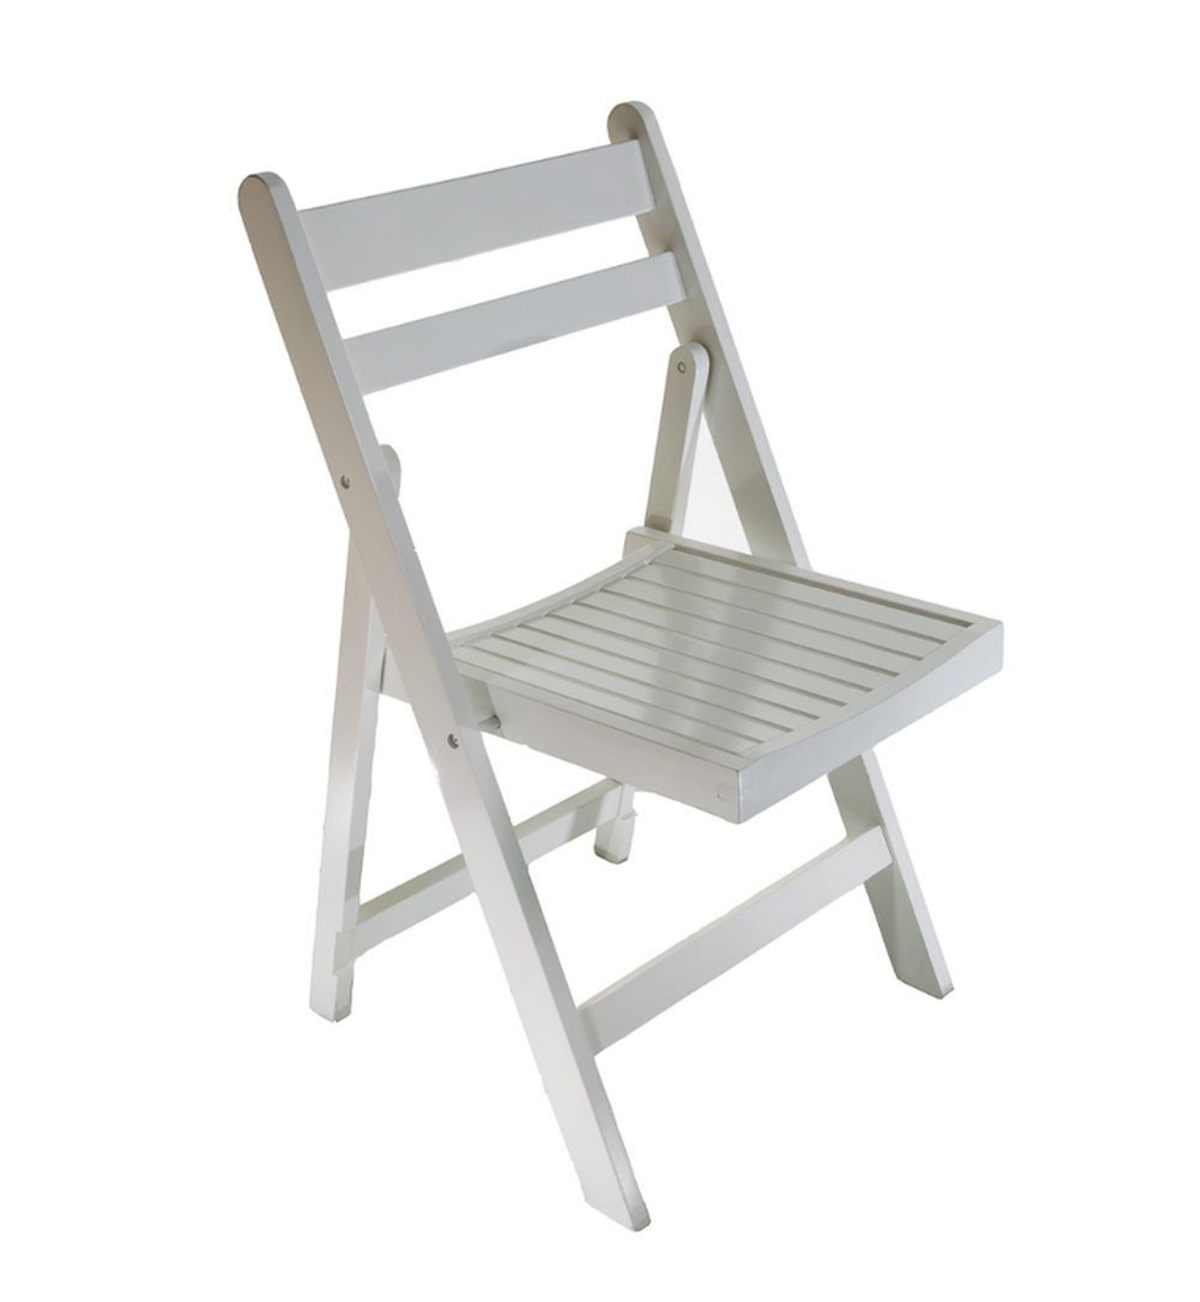 secondhand chairs and tables folding chairs 250x white wooden folding chairs new. Black Bedroom Furniture Sets. Home Design Ideas